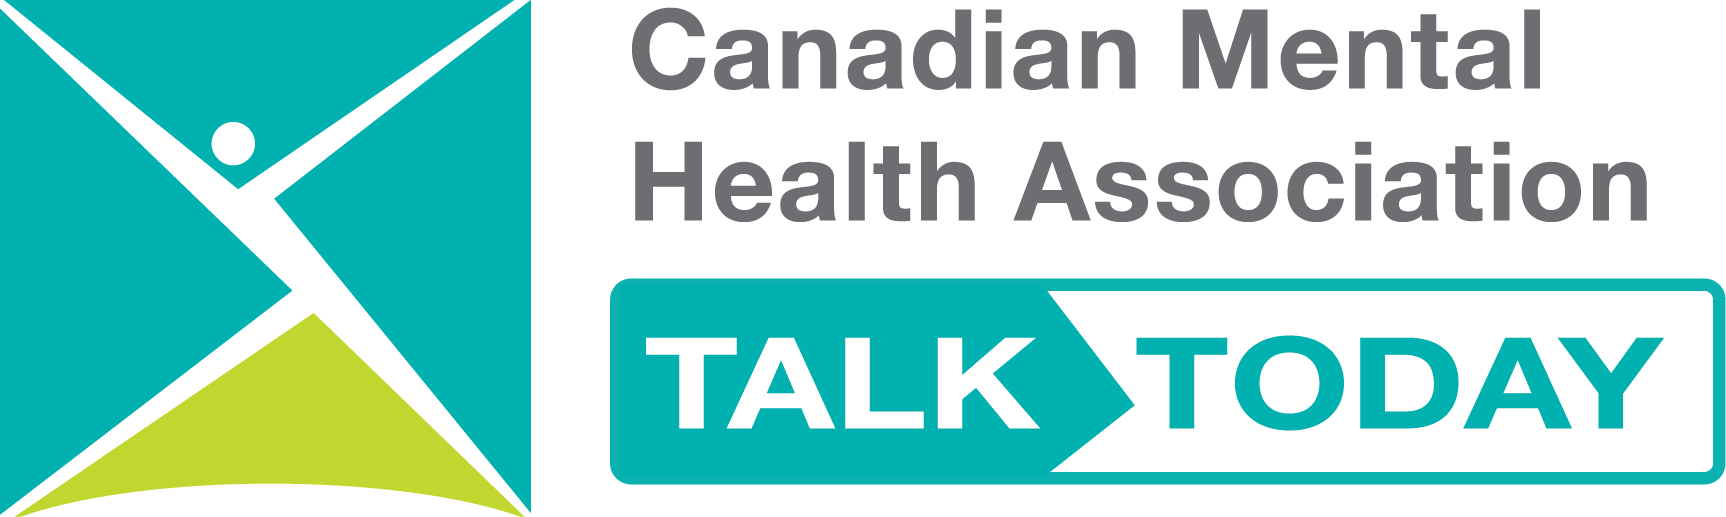 CMHA talk today logo